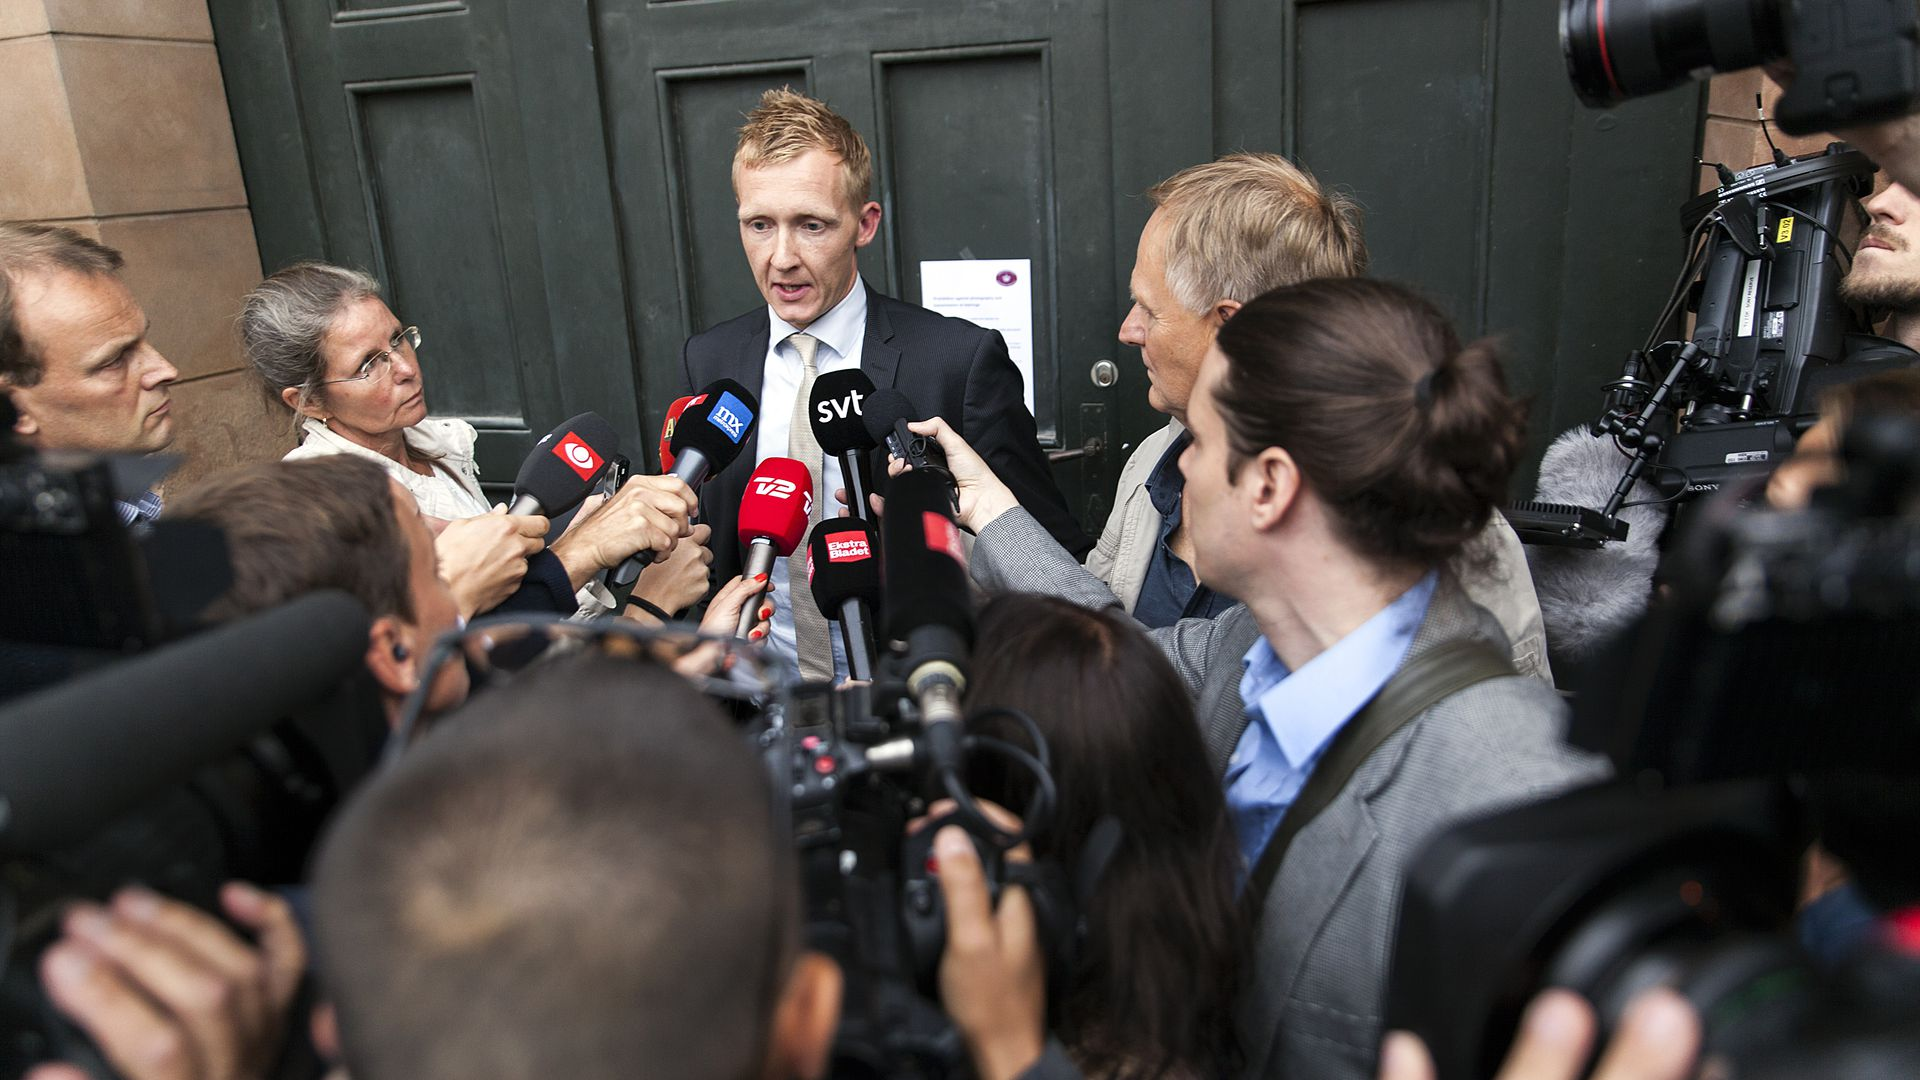 Prosecutor Jakob Buch-Jepsen holds a press briefing after a September 2017 decision over the murder case of journalist Kim Wall.